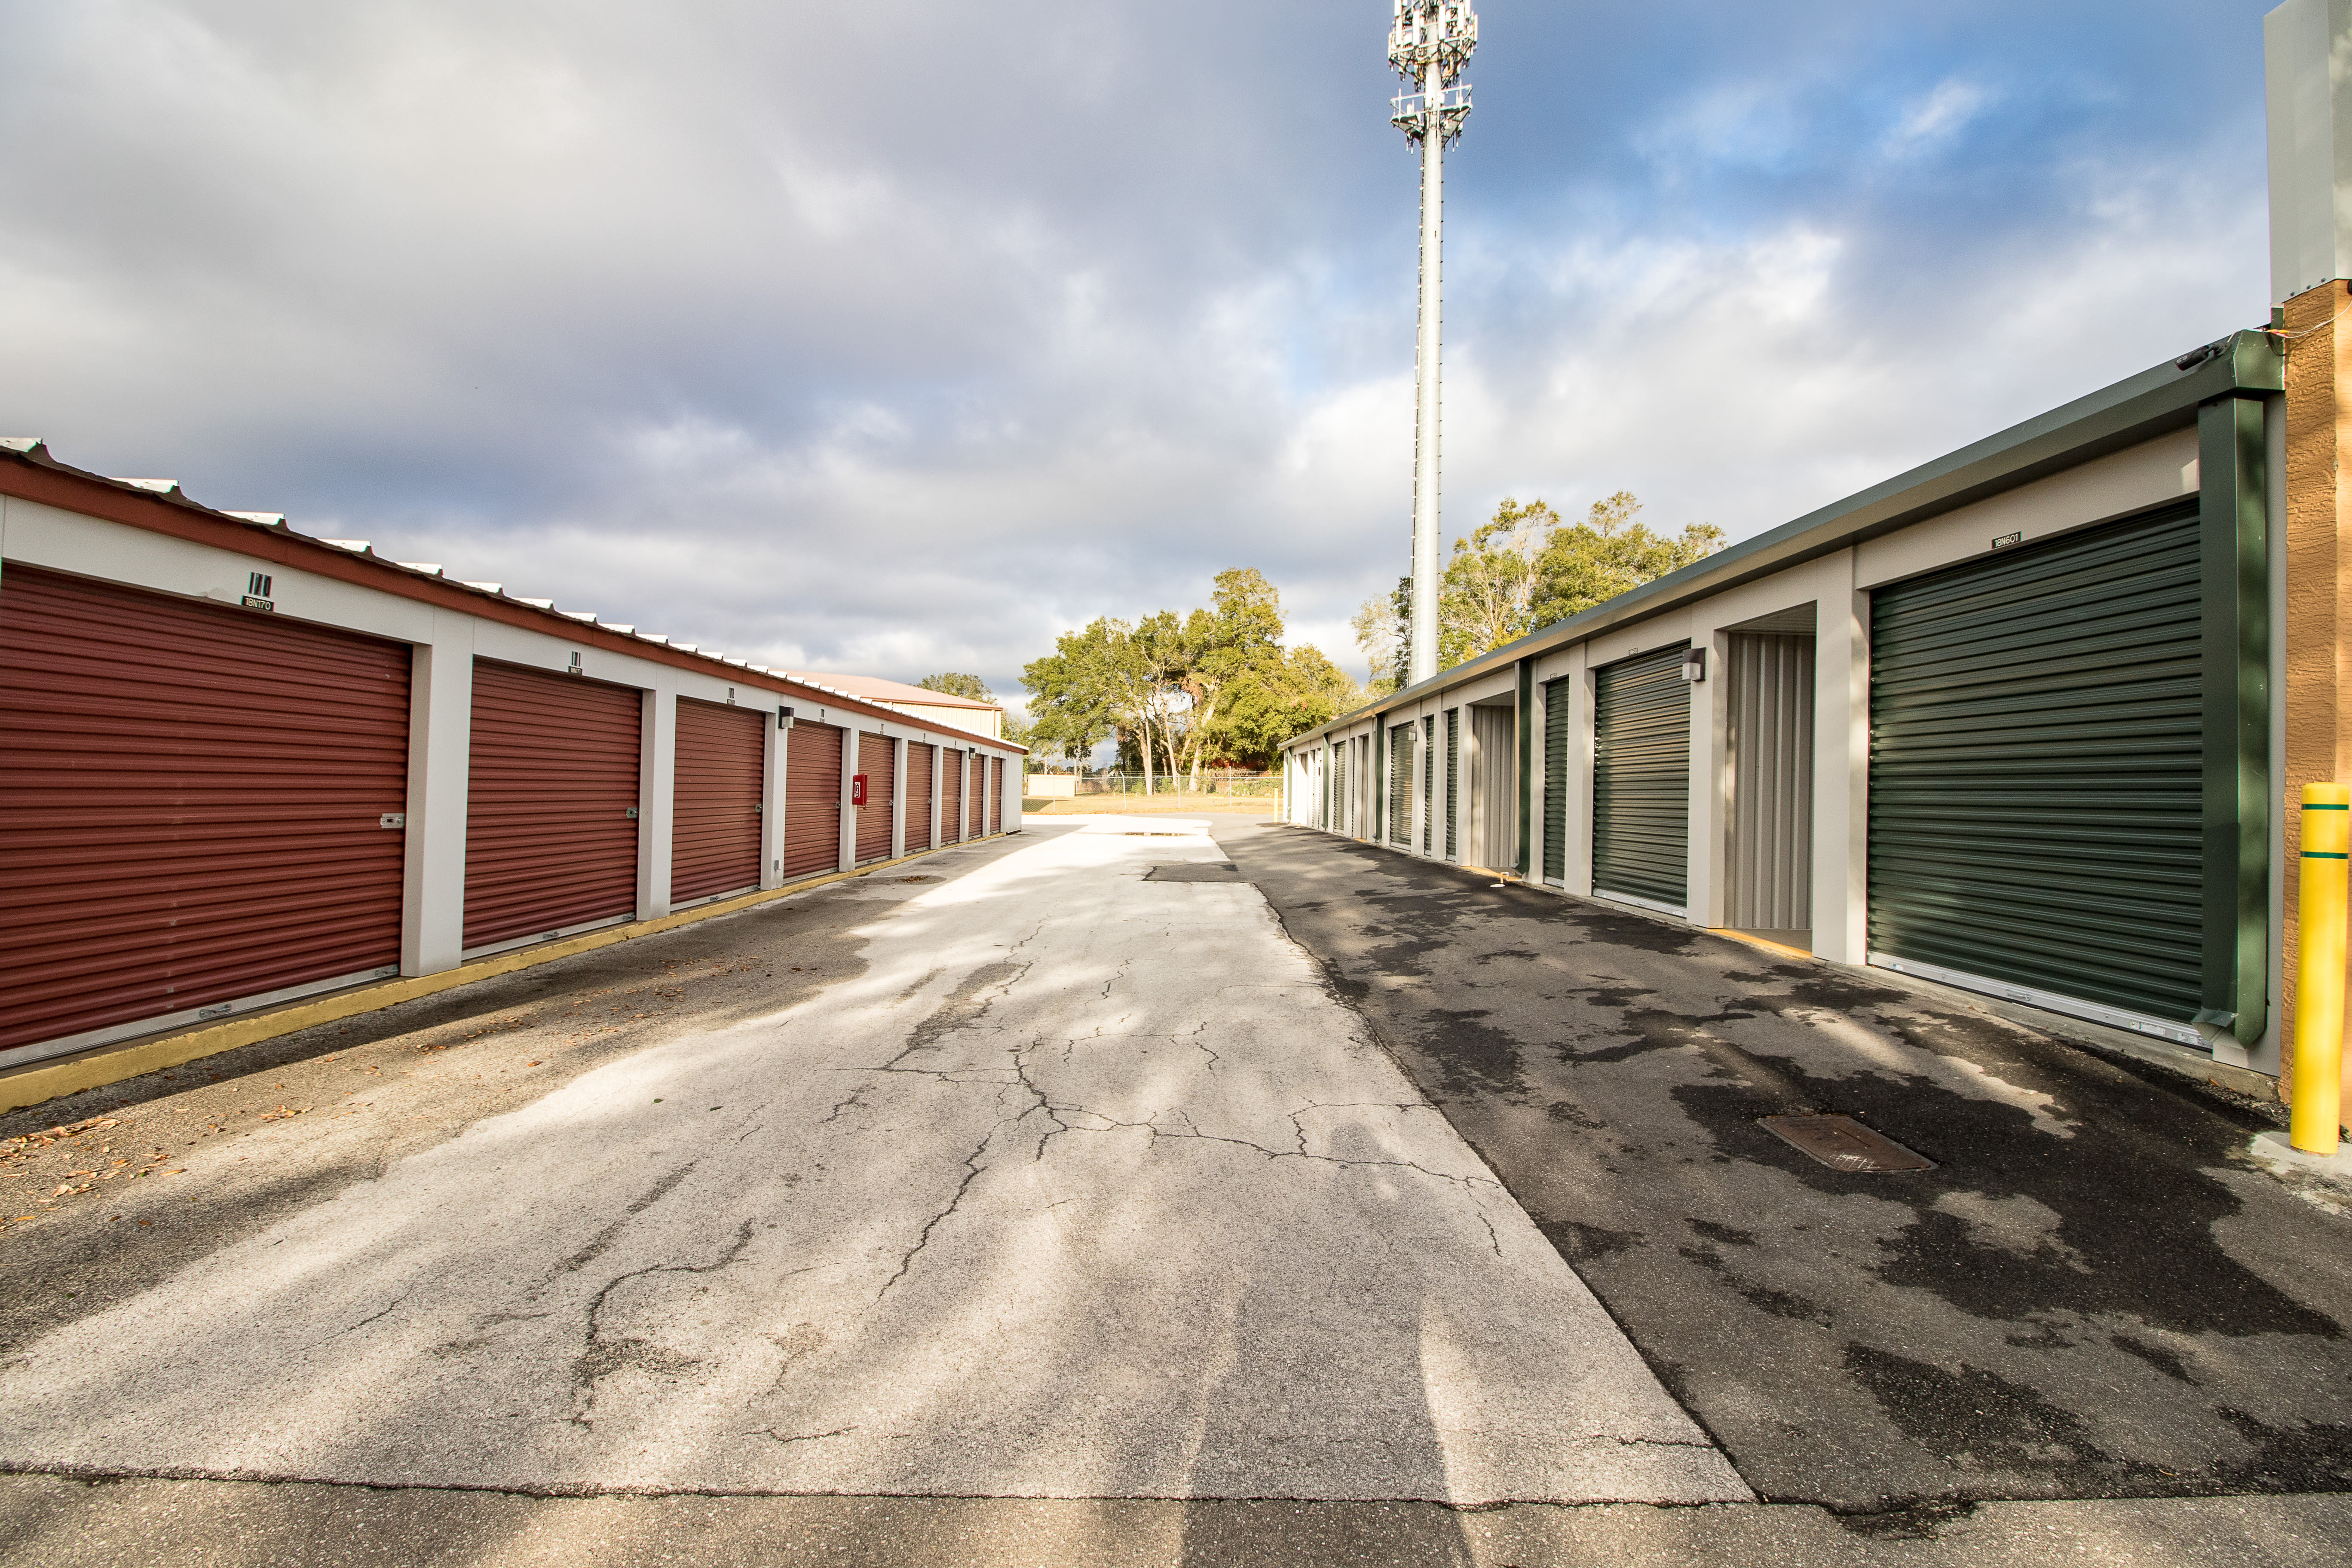 Neighborhood Storage features exterior storage units in Ocala, Florida